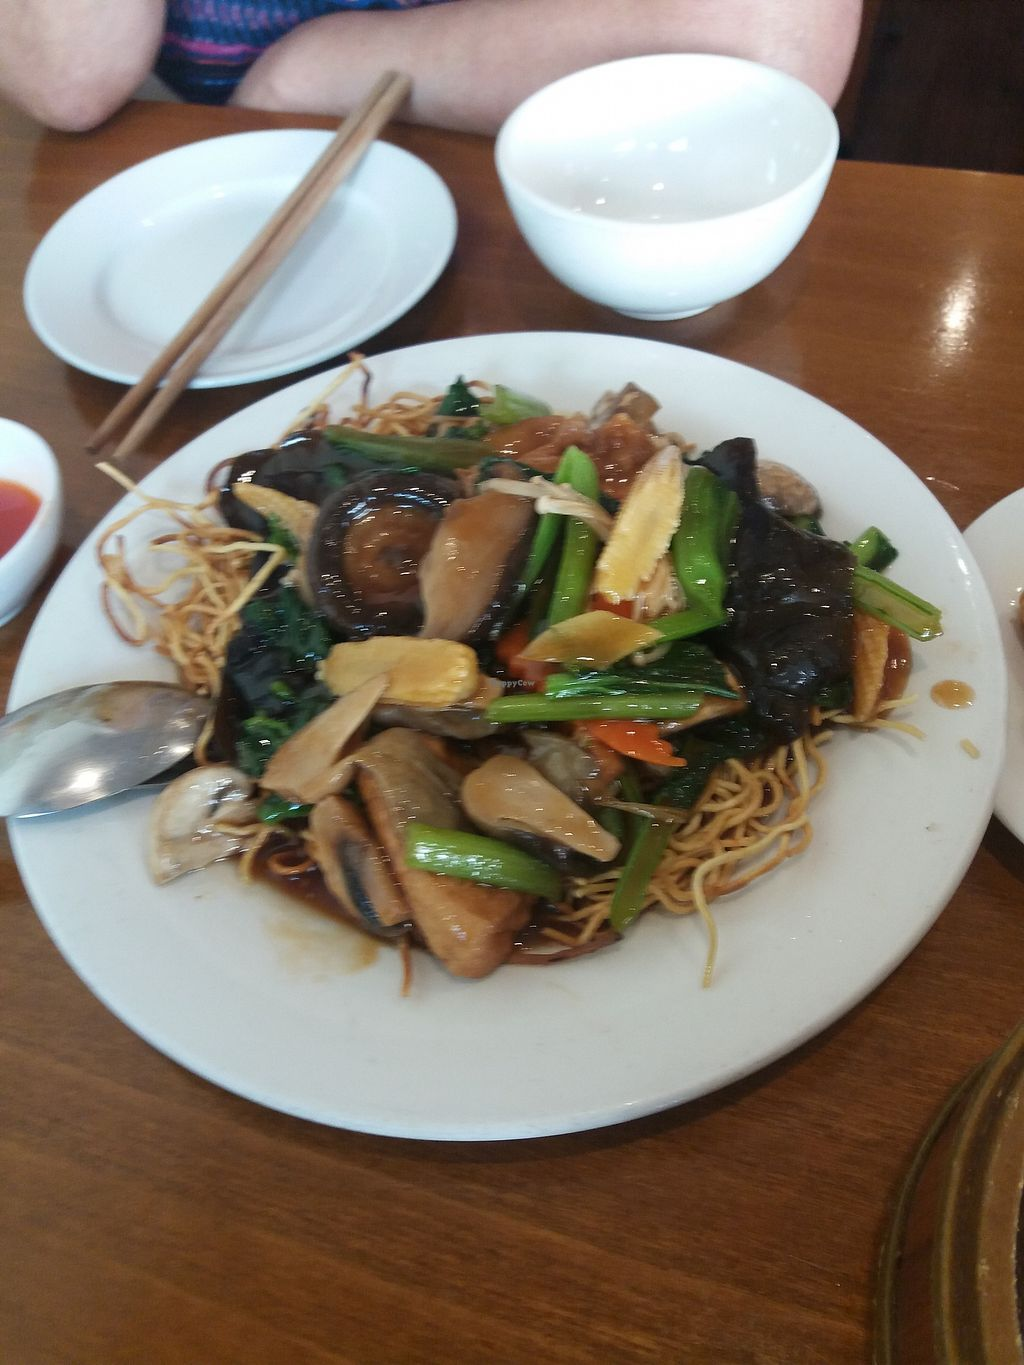 "Photo of Green Gourmet  by <a href=""/members/profile/veganvirtues"">veganvirtues</a> <br/>Spring vegs and crispy noodles <br/> September 25, 2017  - <a href='/contact/abuse/image/482/308114'>Report</a>"